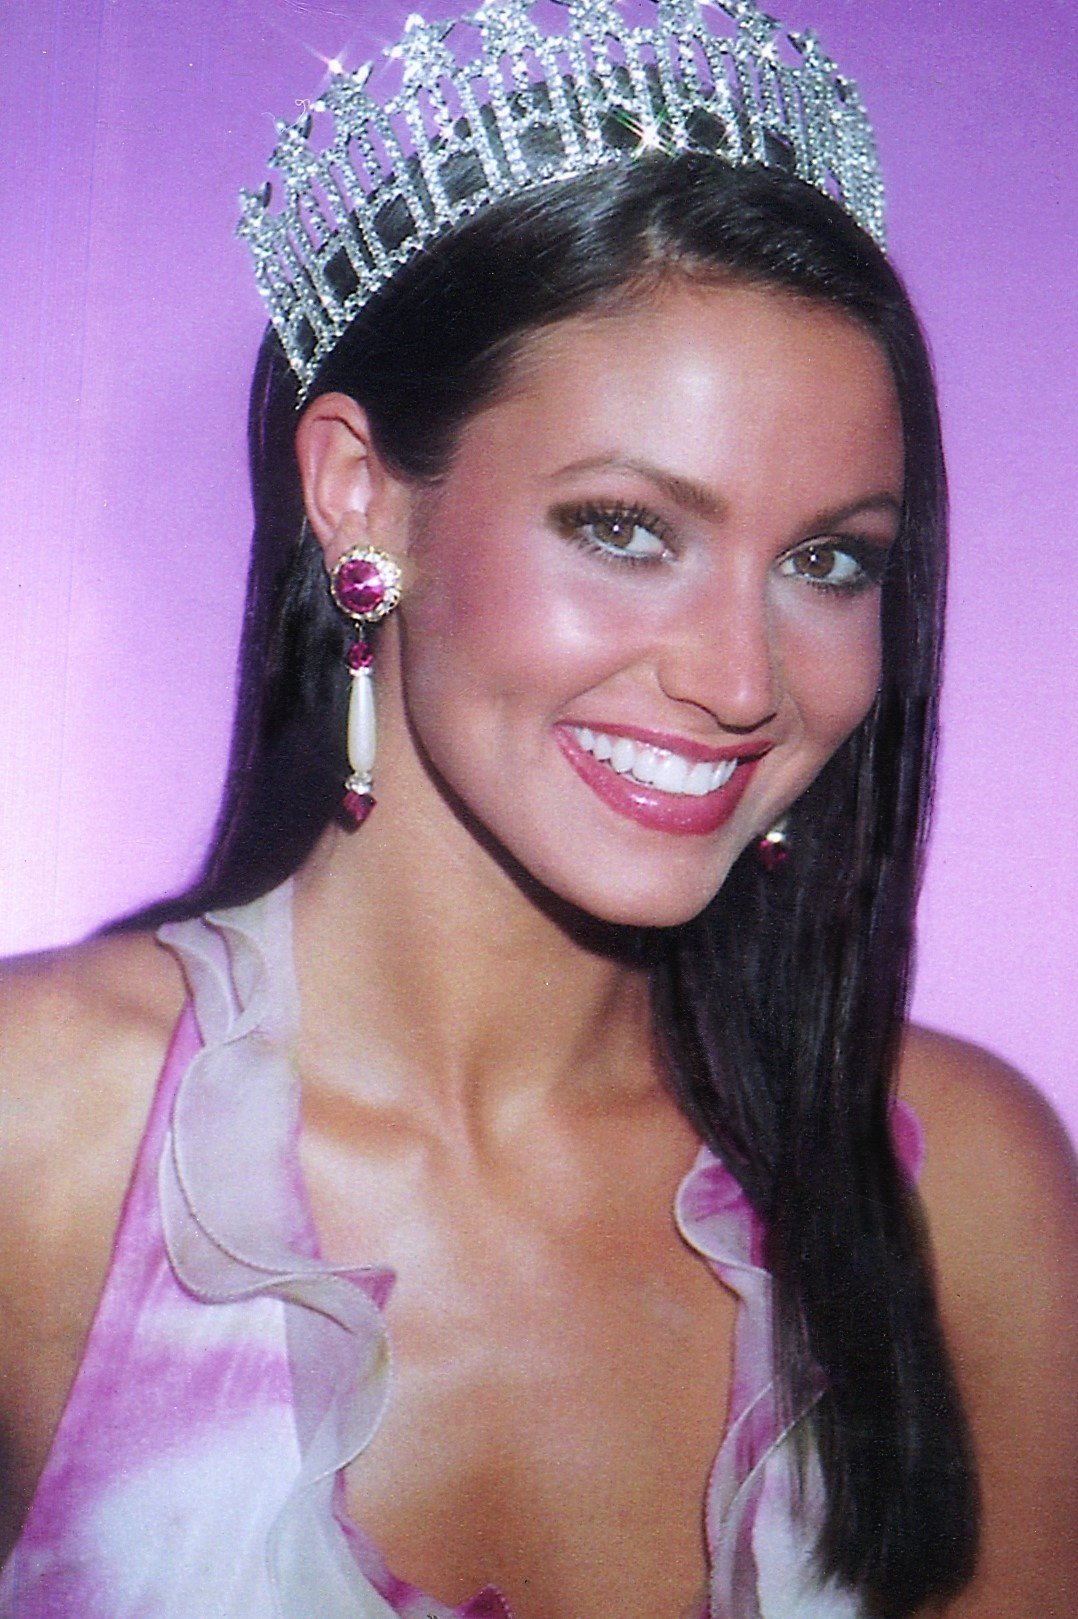 MISS SC-USA -  AMANDA PENNEKAMP   She was also first runner up at MISS USA..